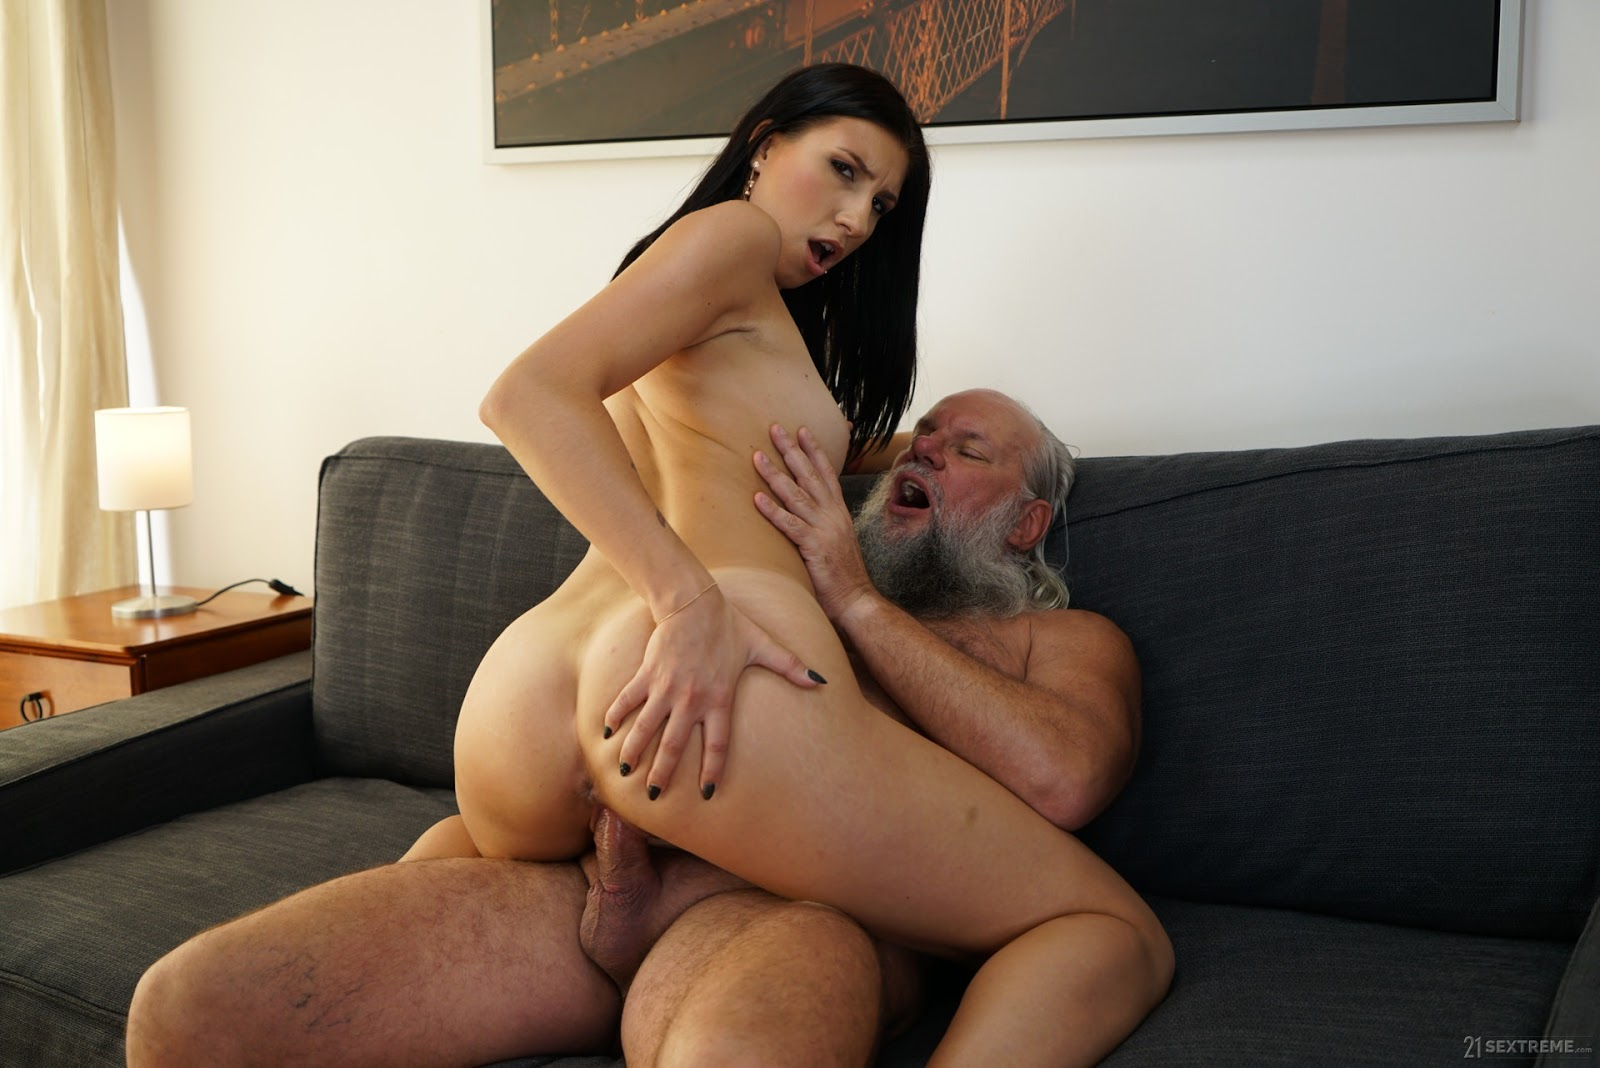 Craving Old Guys,21 SEXTREME, 4K, Anal, Threesome, Uncensored, Westen, Westen Porn,Albert ,HennaSsy